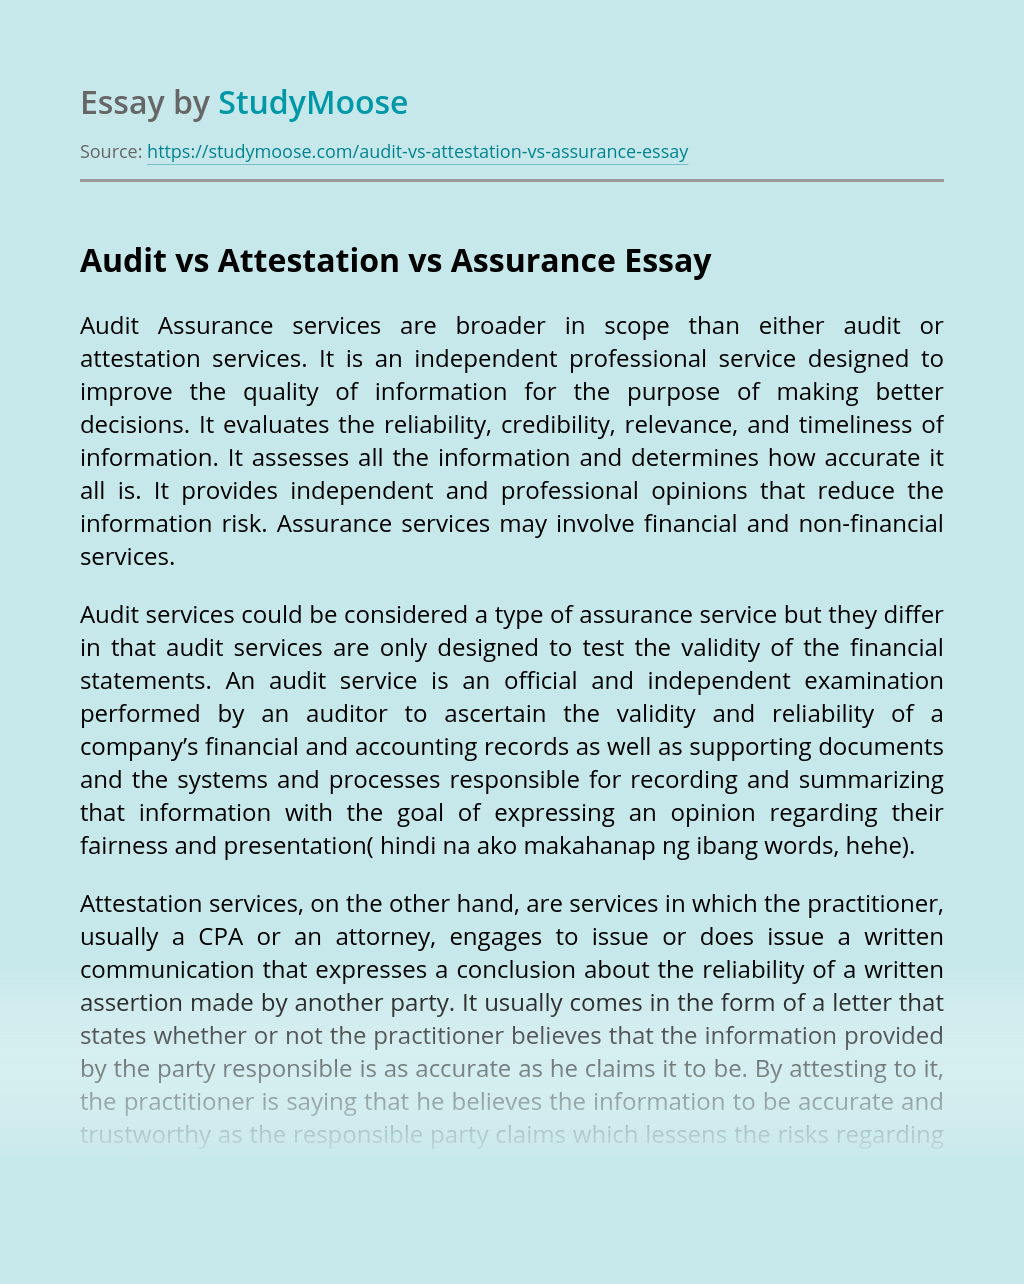 Audit vs Attestation vs Assurance